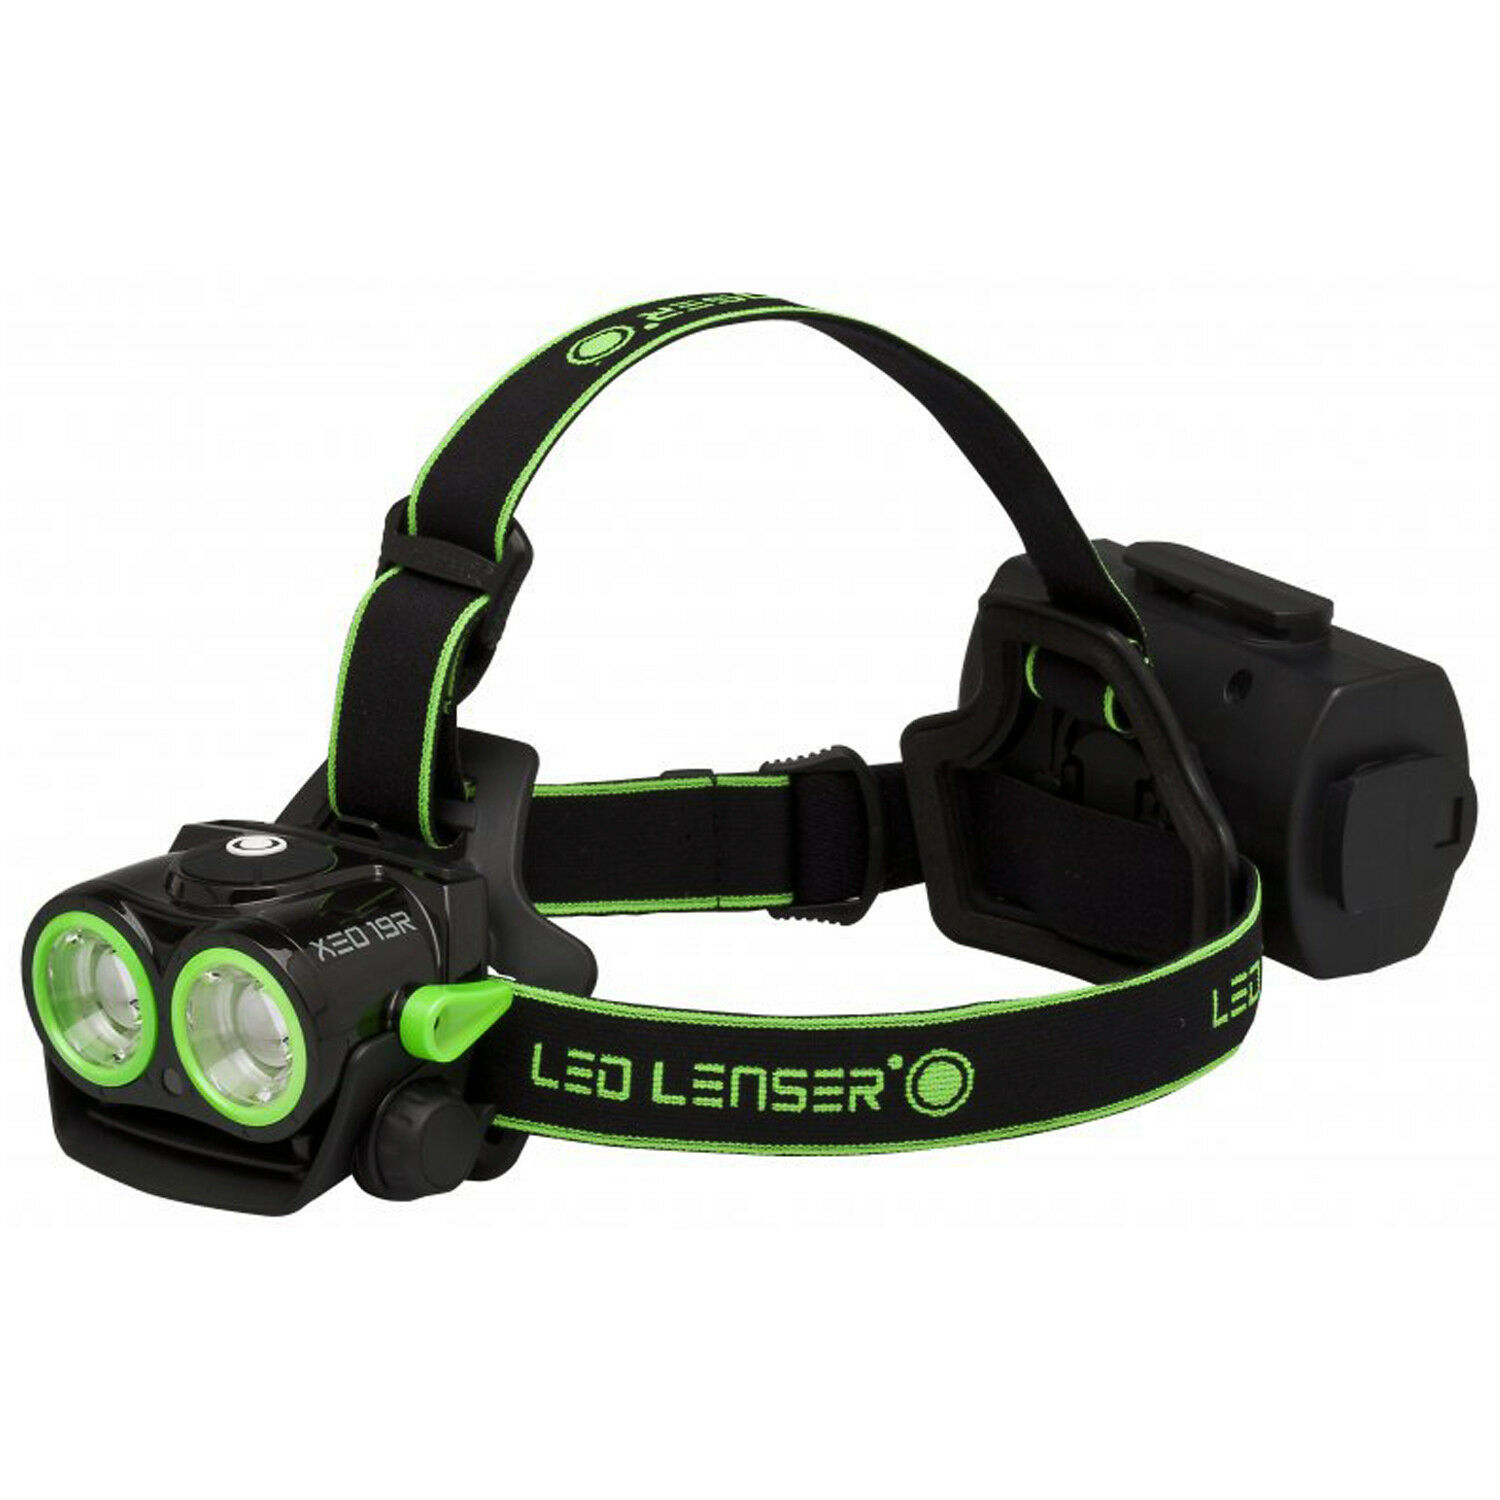 NEW LED Lenser XE019R Green Rechargeable Headtorch - XEO19R